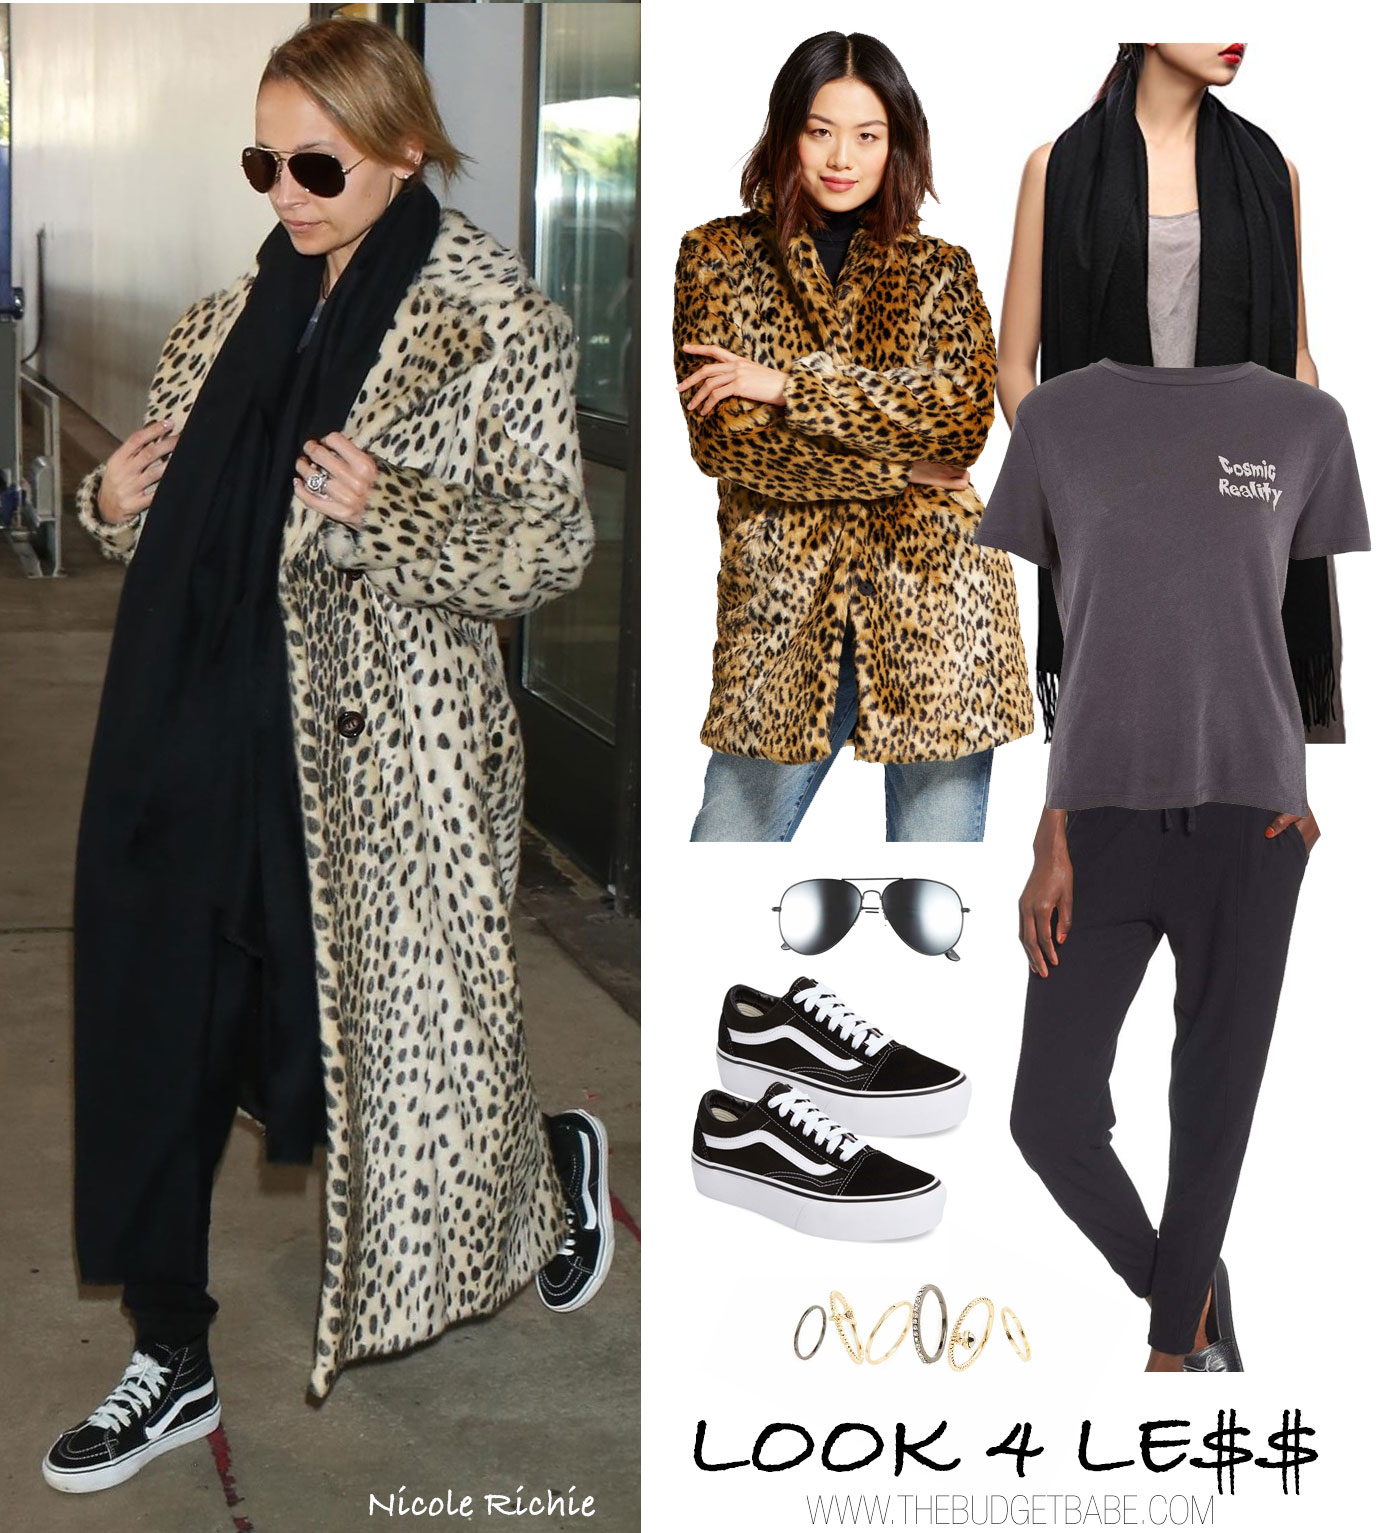 Nicole Richie wears a leopard coat with Vans sneakers for travel